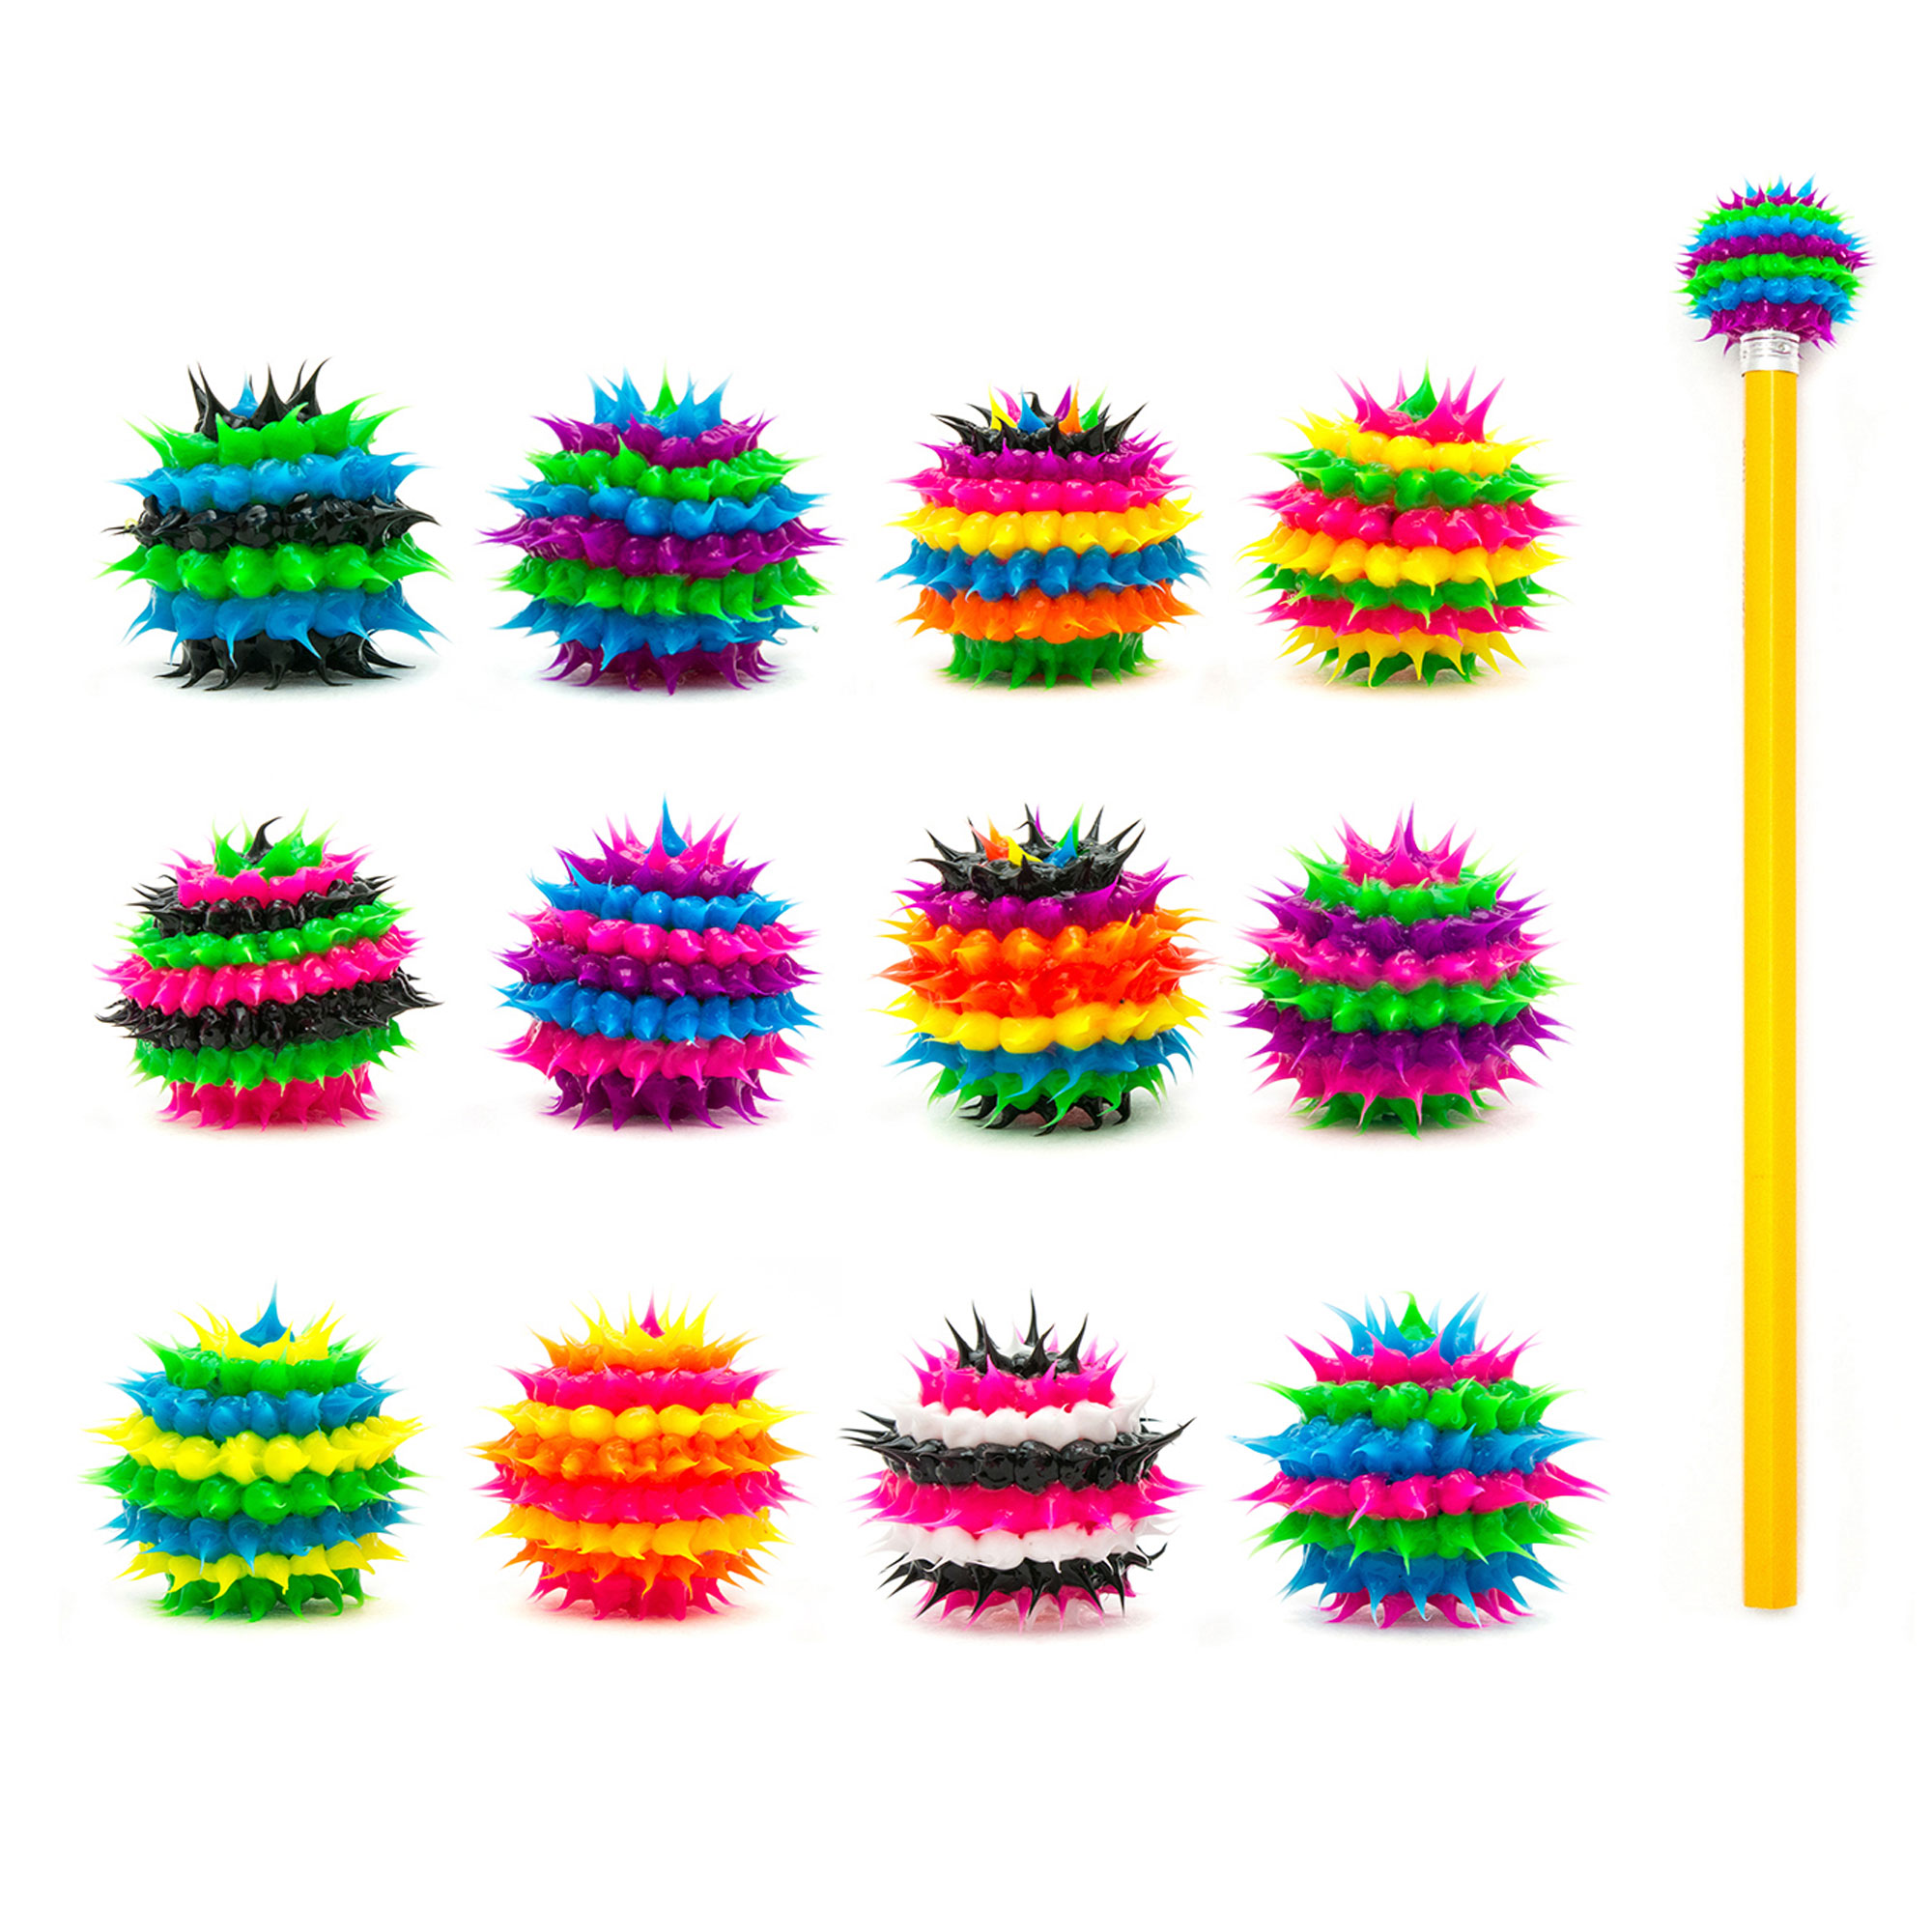 Frogsac 12 Pieces Striped Spiky Silicone Pencil Toppers - Great Party Favors